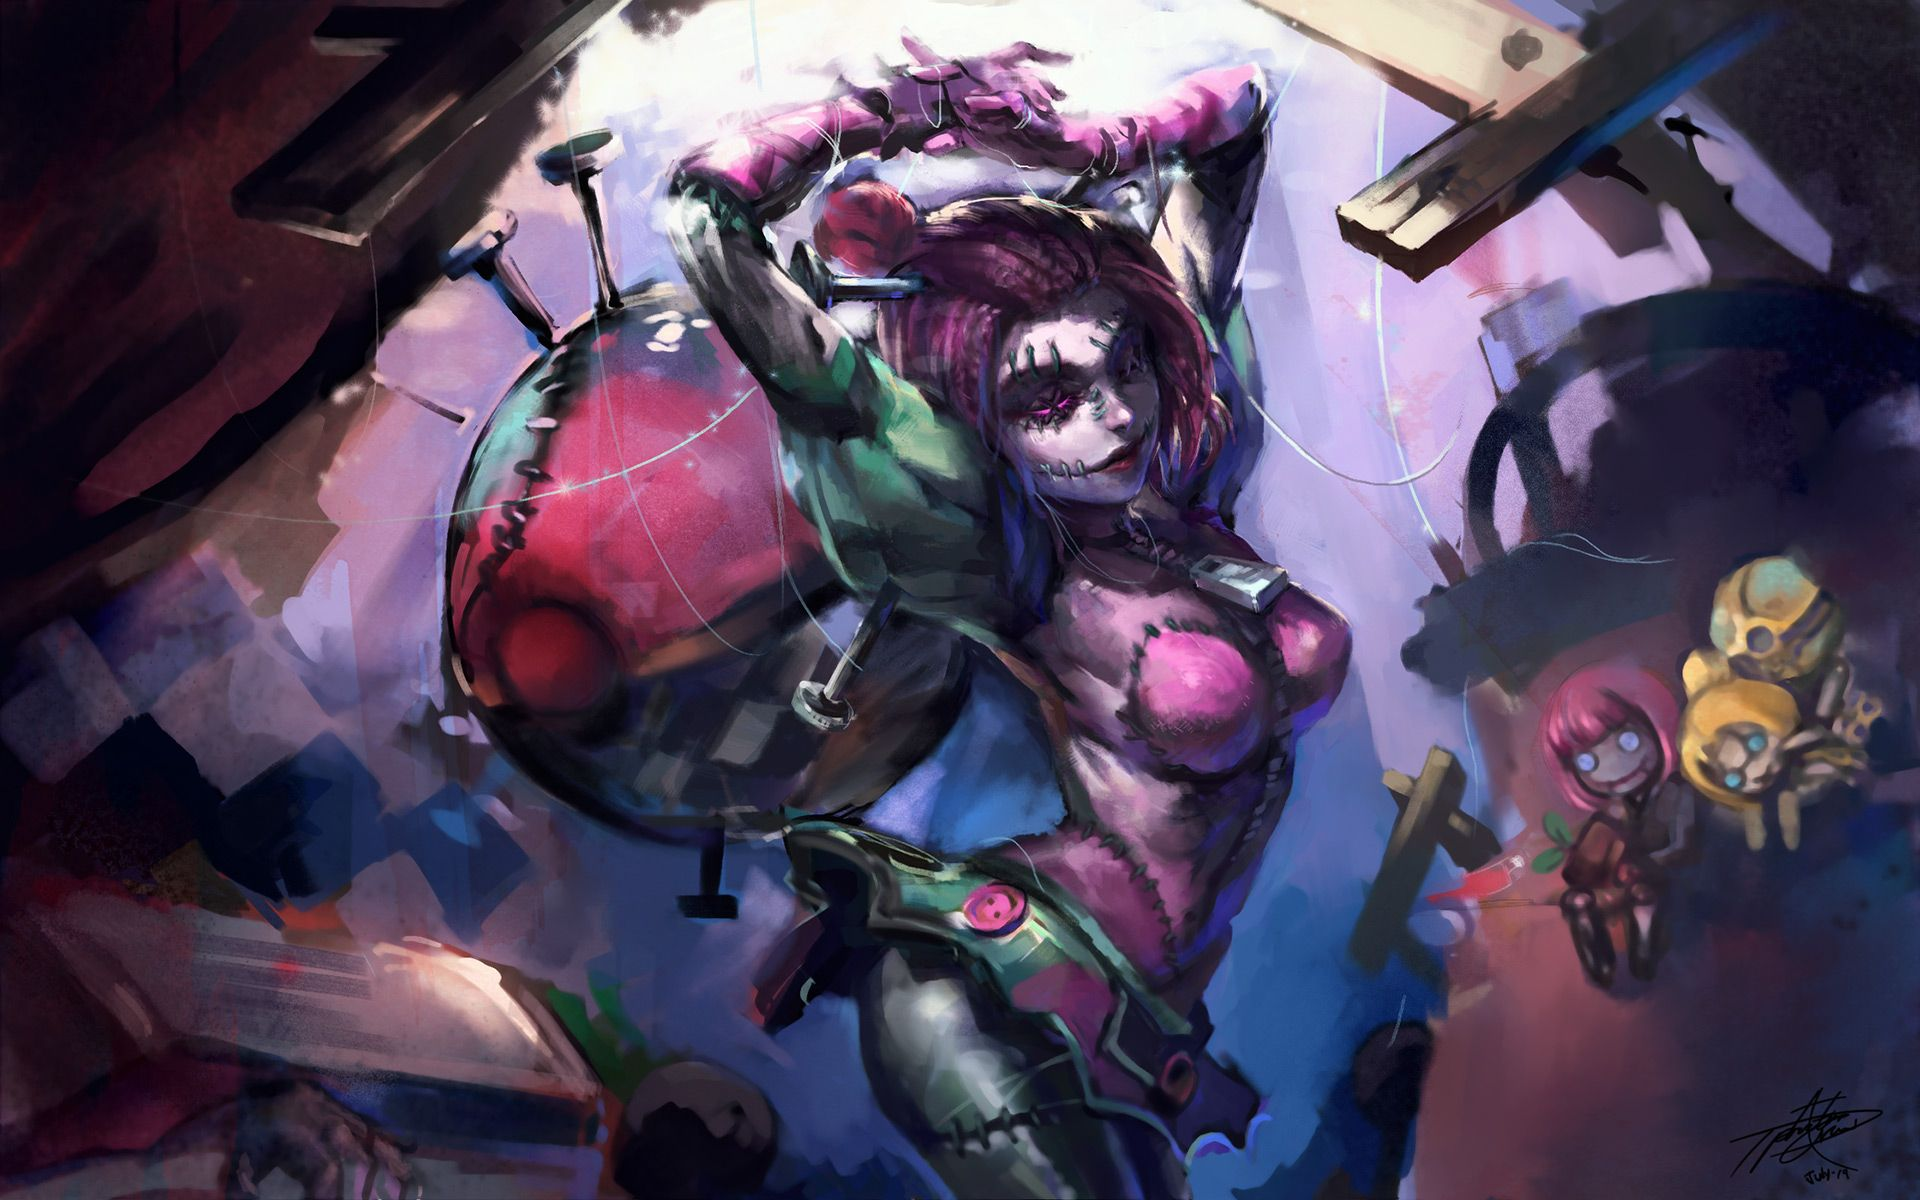 Download Wallpaper Fanart Sewn Chaos Orianna Skin Full Hd On